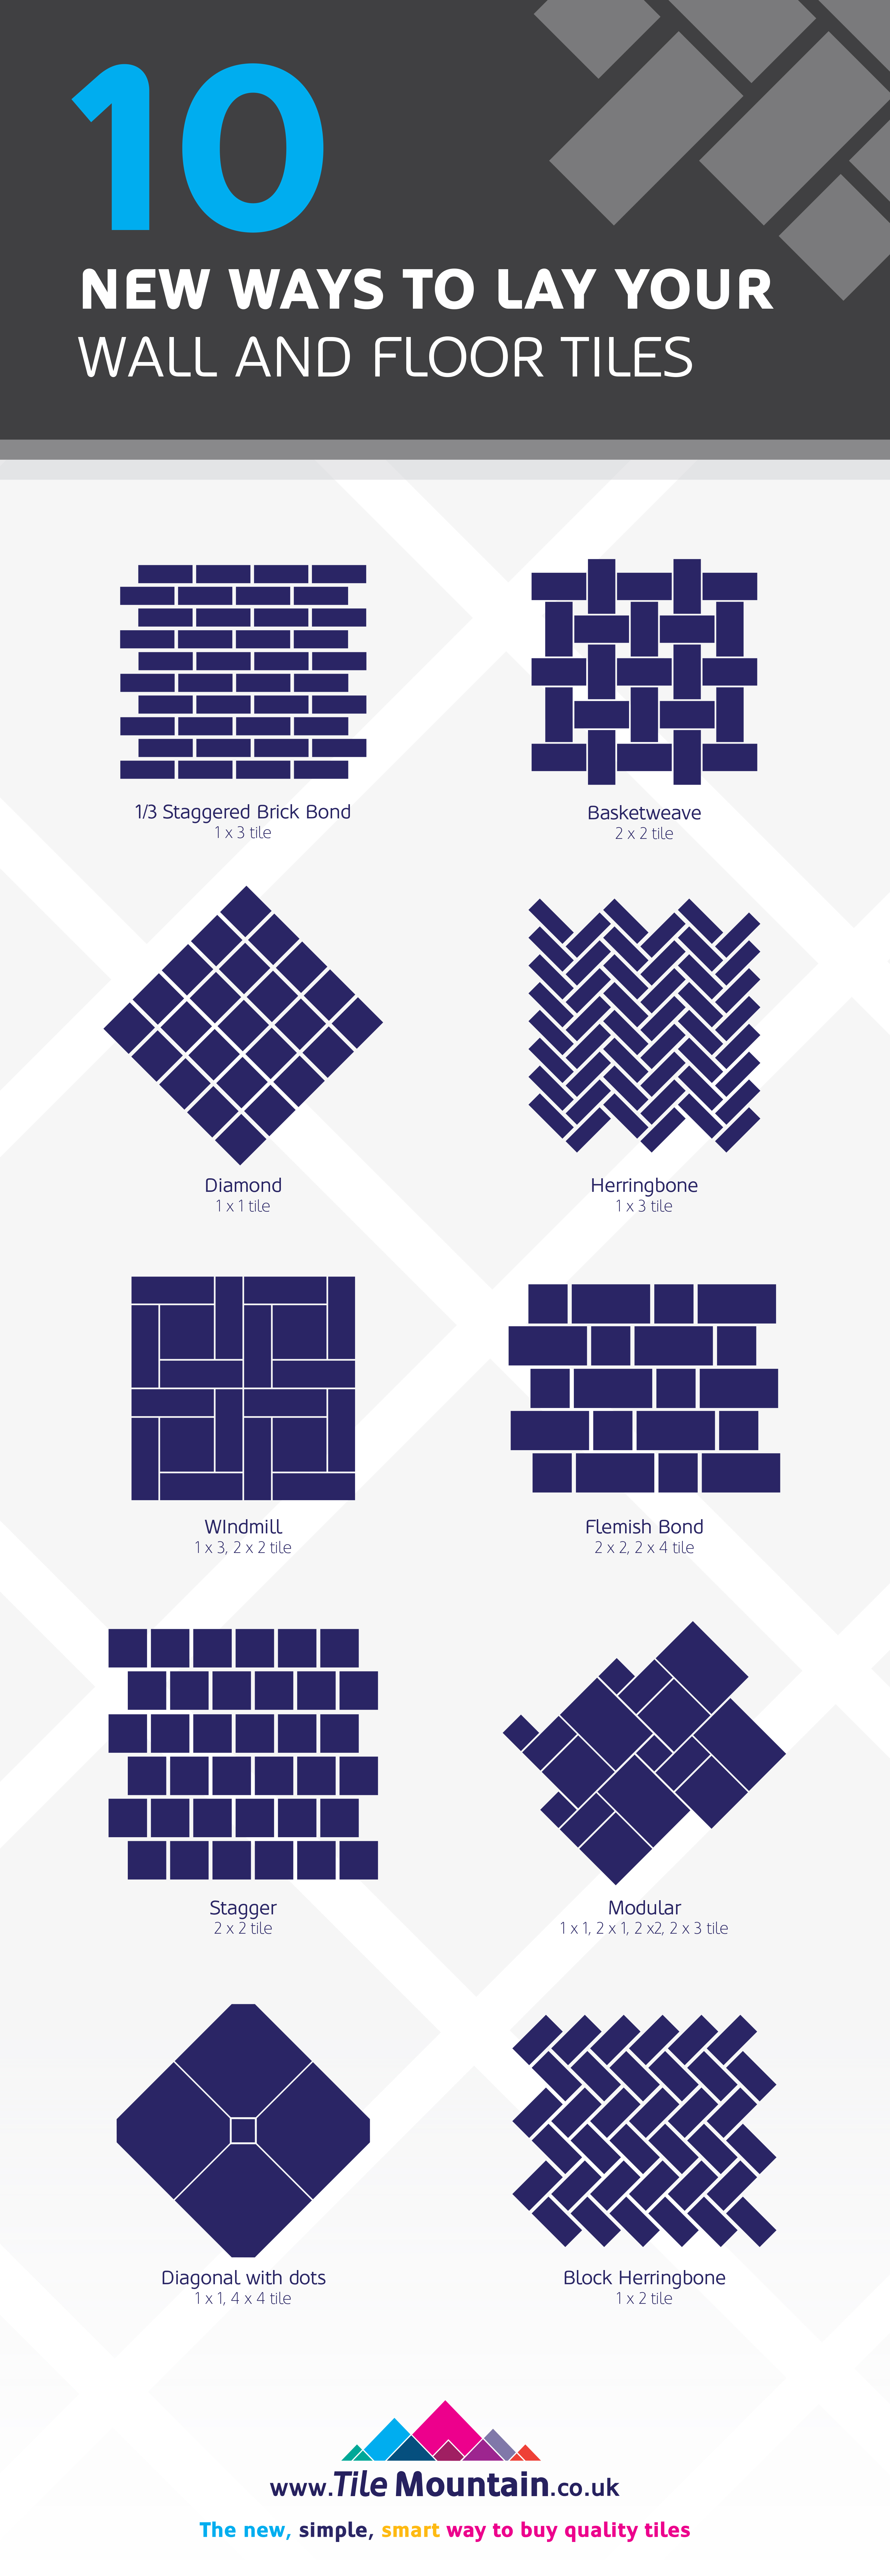 10 New Ways to Lay Wall Tiles and Floor Tiles - Tile Mountain